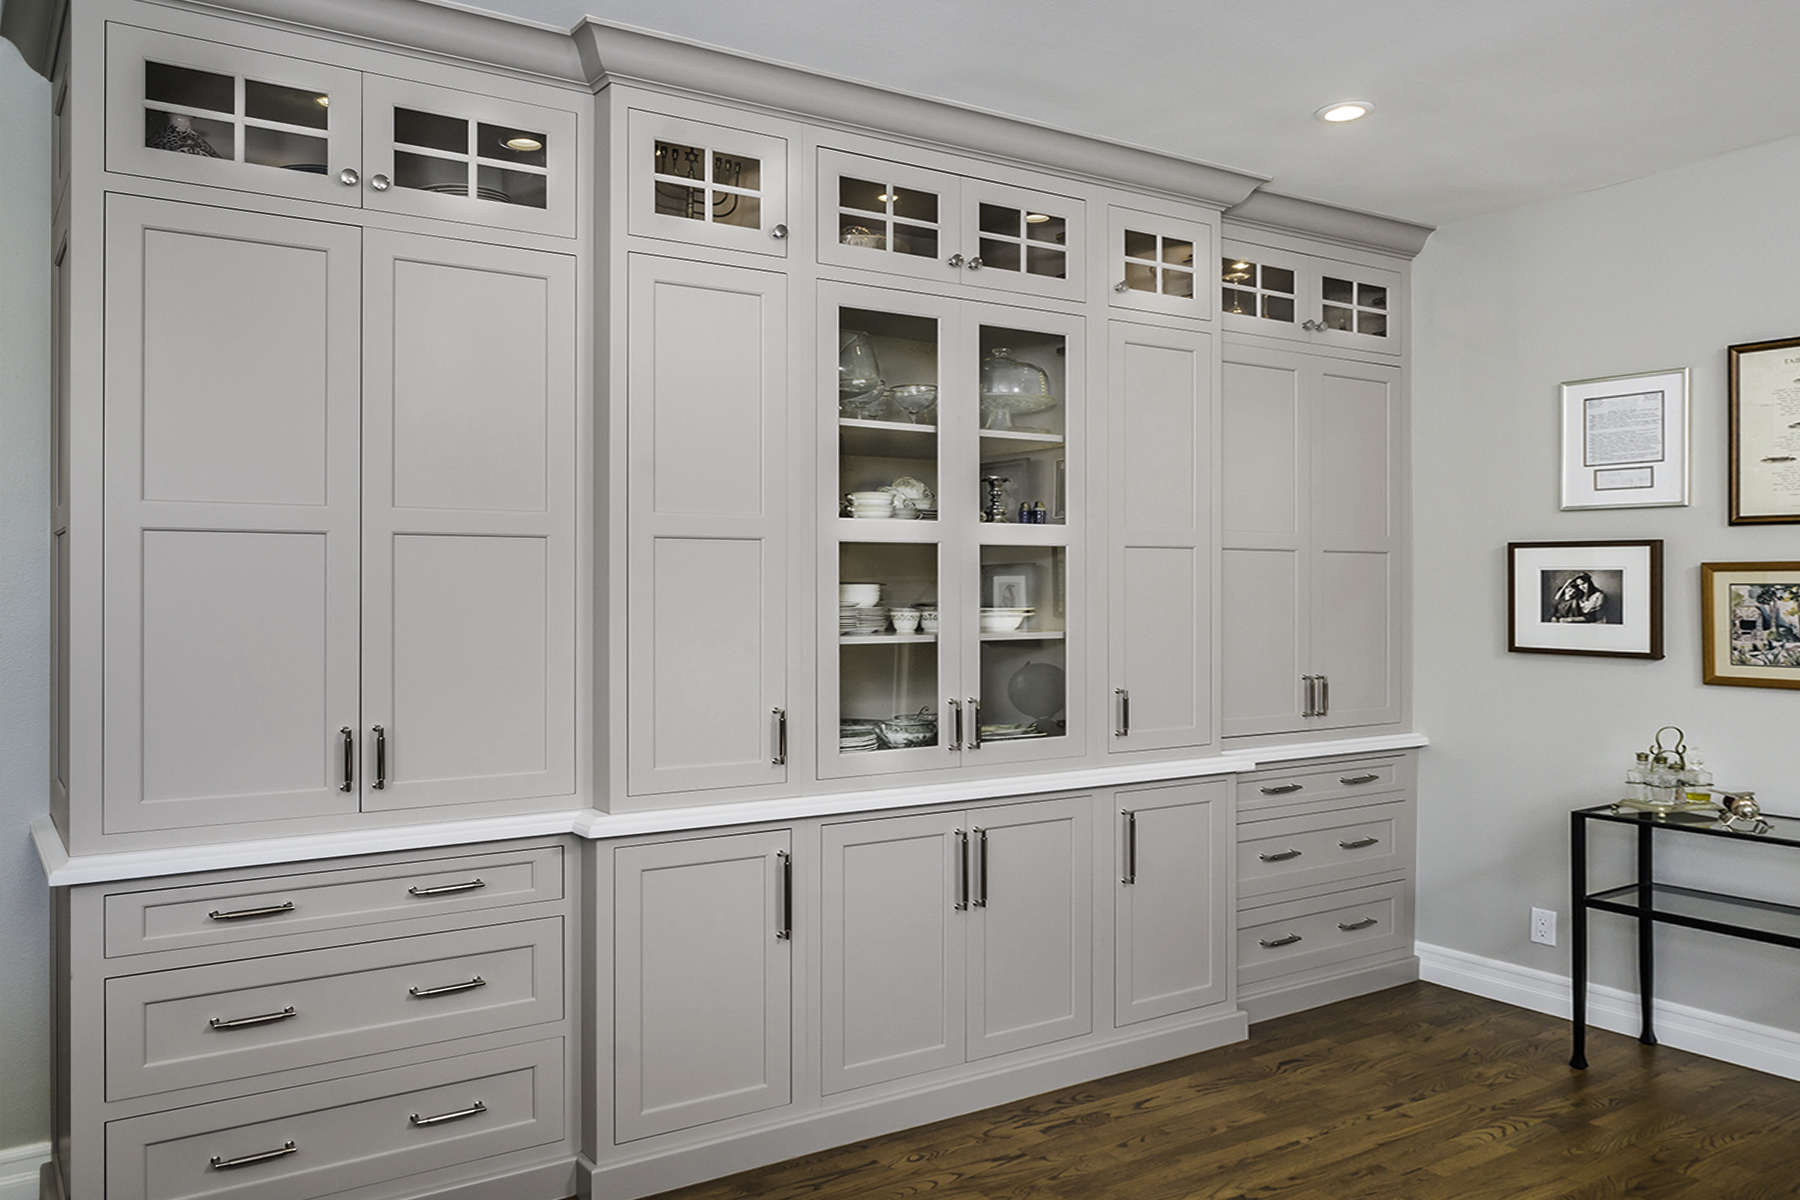 Athina Light Grey Kitchen Cabinets With Glass Inserts